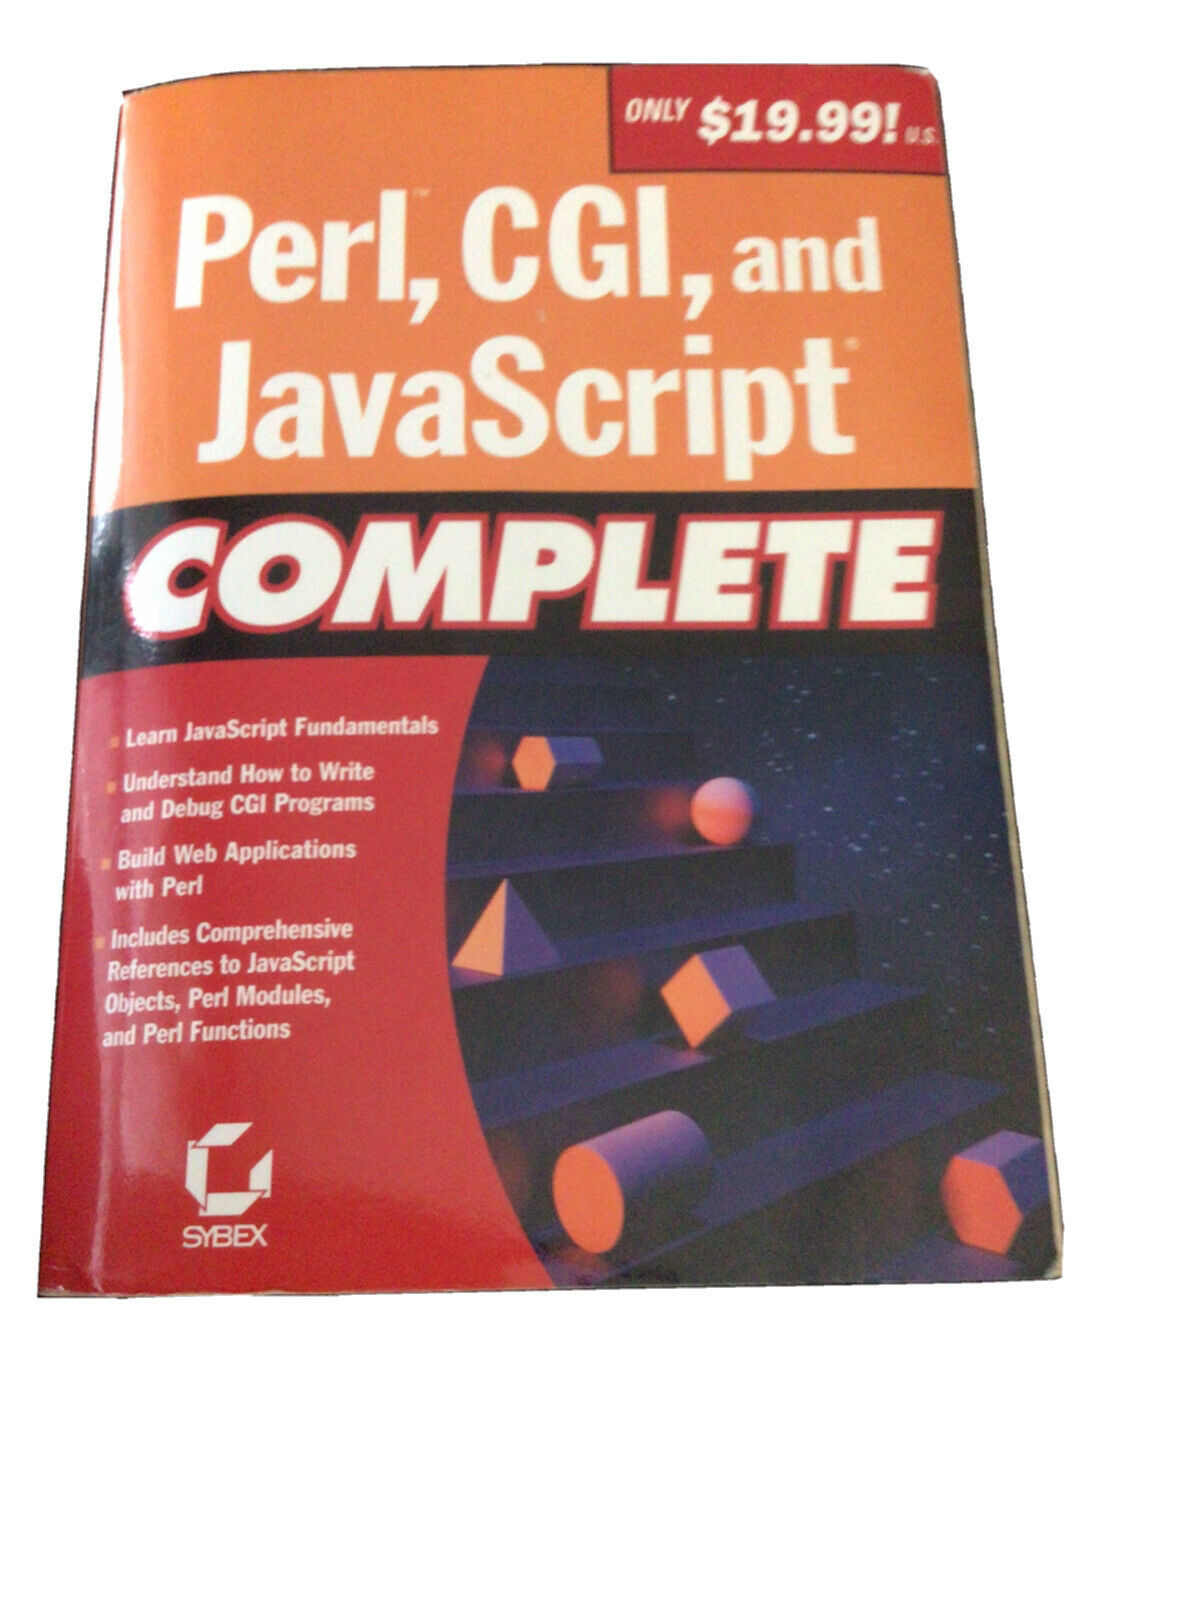 Perl, CGI, and JavaScript Complete by Sybex Inc.  